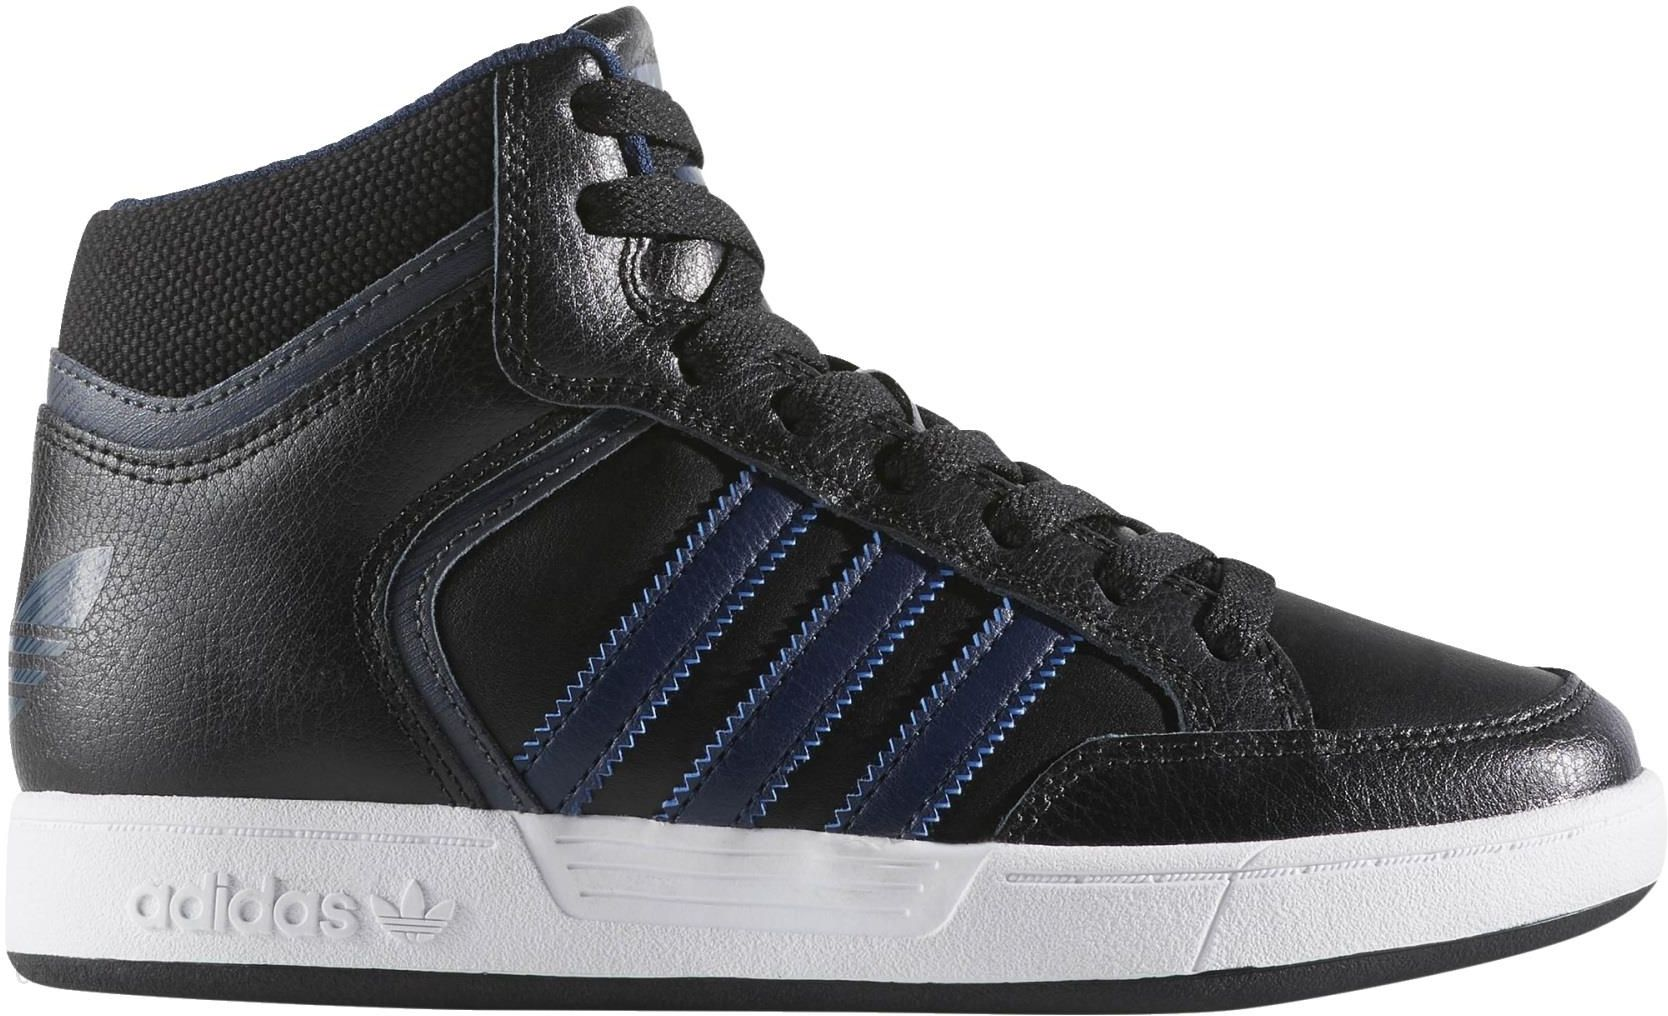 238d92030aa83 Buty adidas Varial Mid BY4085 35,5 - Ceny i opinie - Ceneo.pl